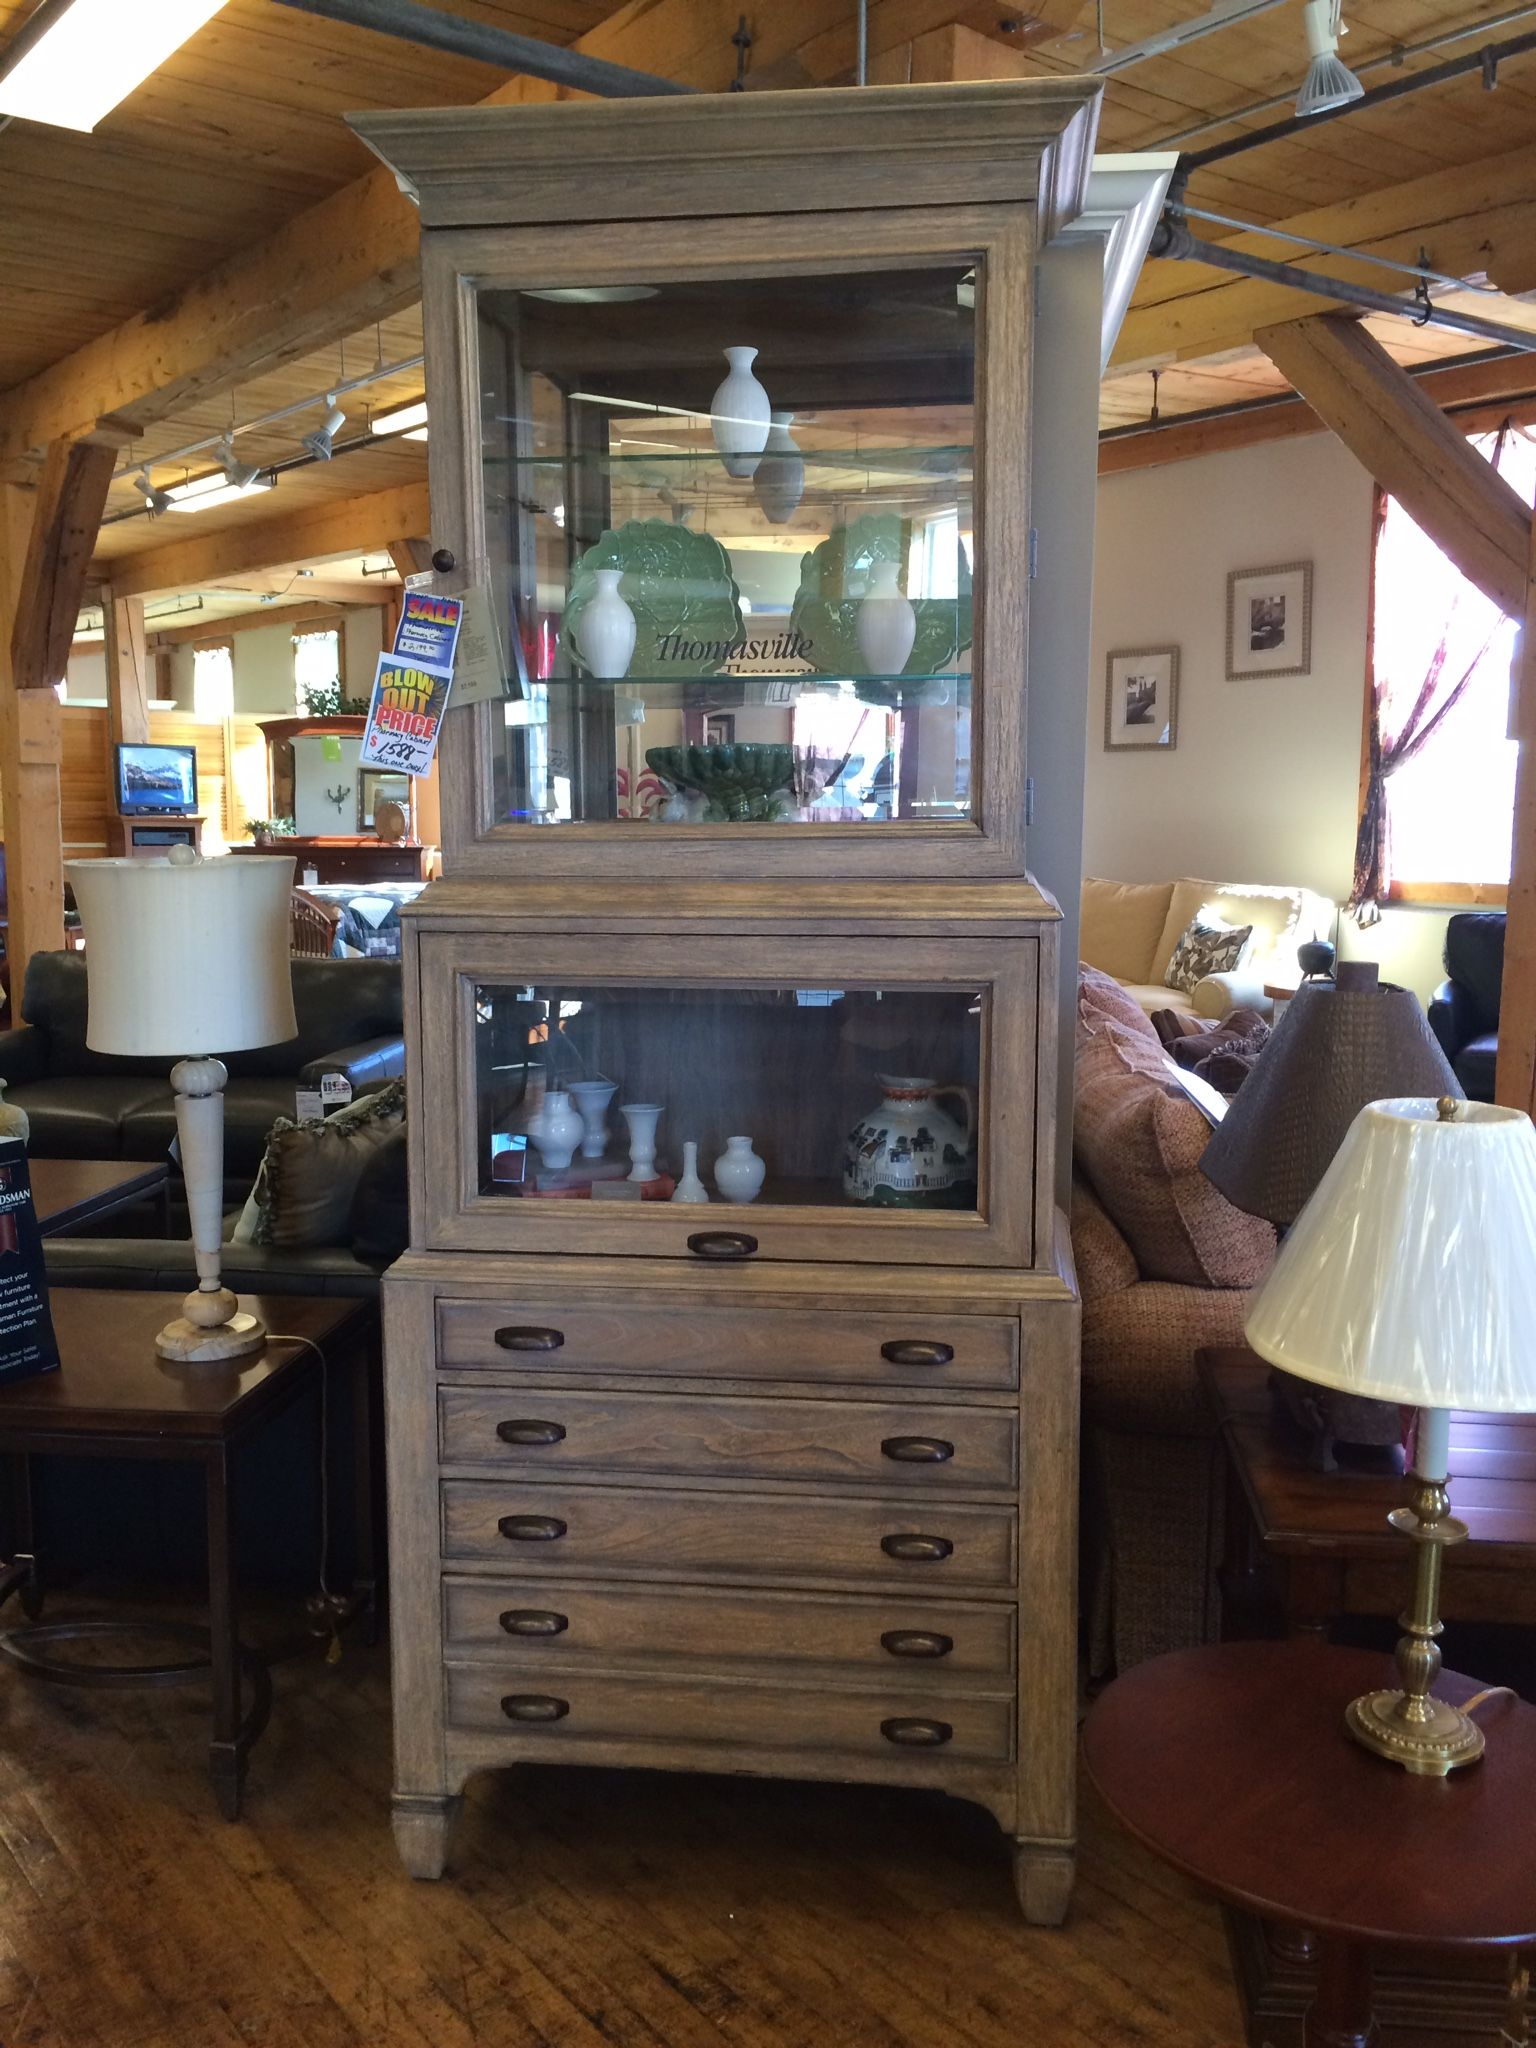 Pharmacy cabinet made by Thomasville purchased for the ...